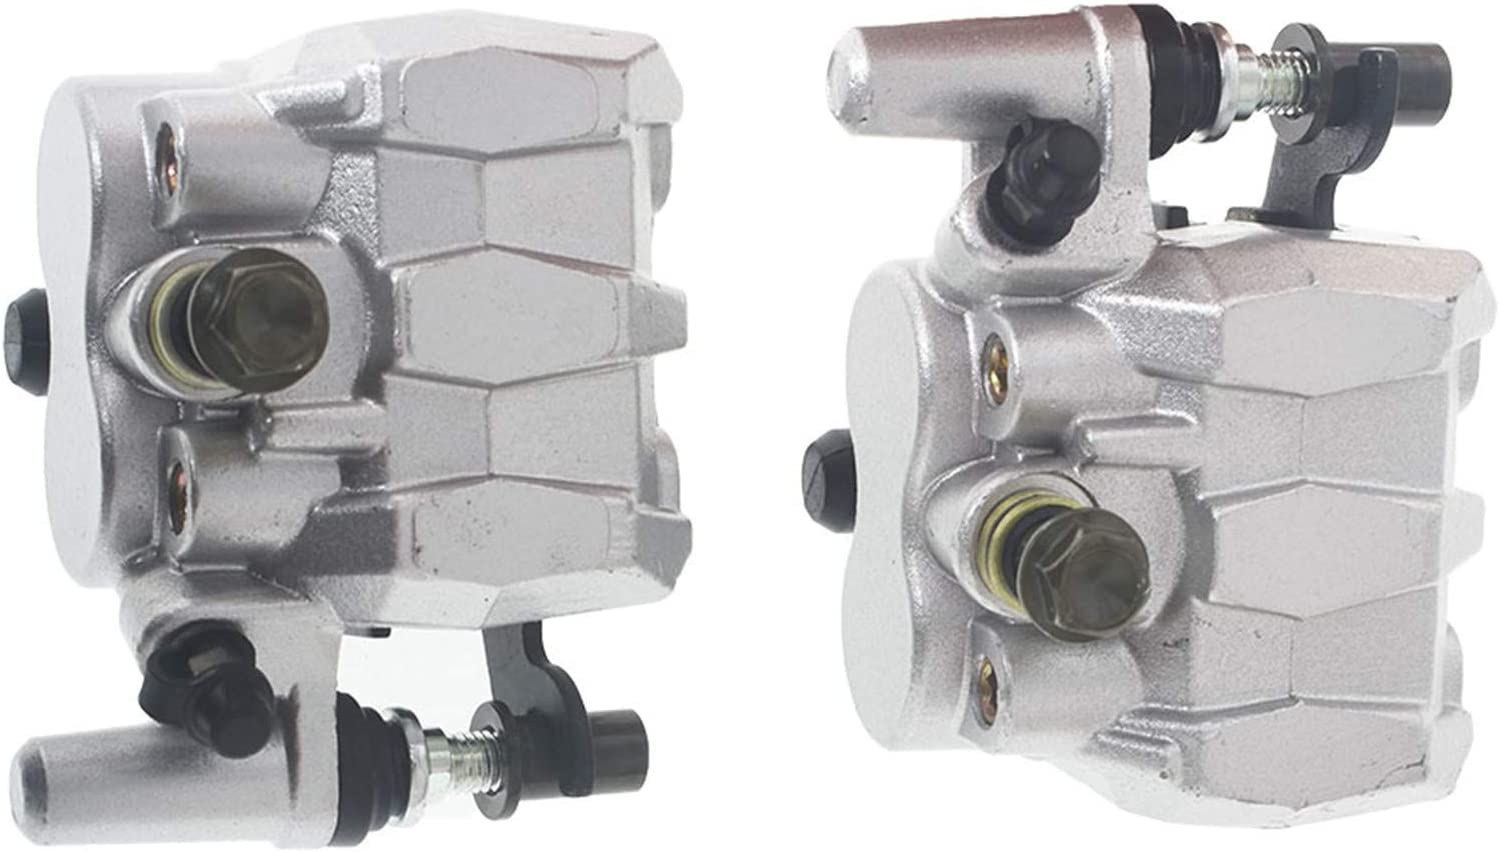 labwork Front Right Left Brake Calipers With Pads Replacemnet for Can Am Maverick 1000 2013-2017